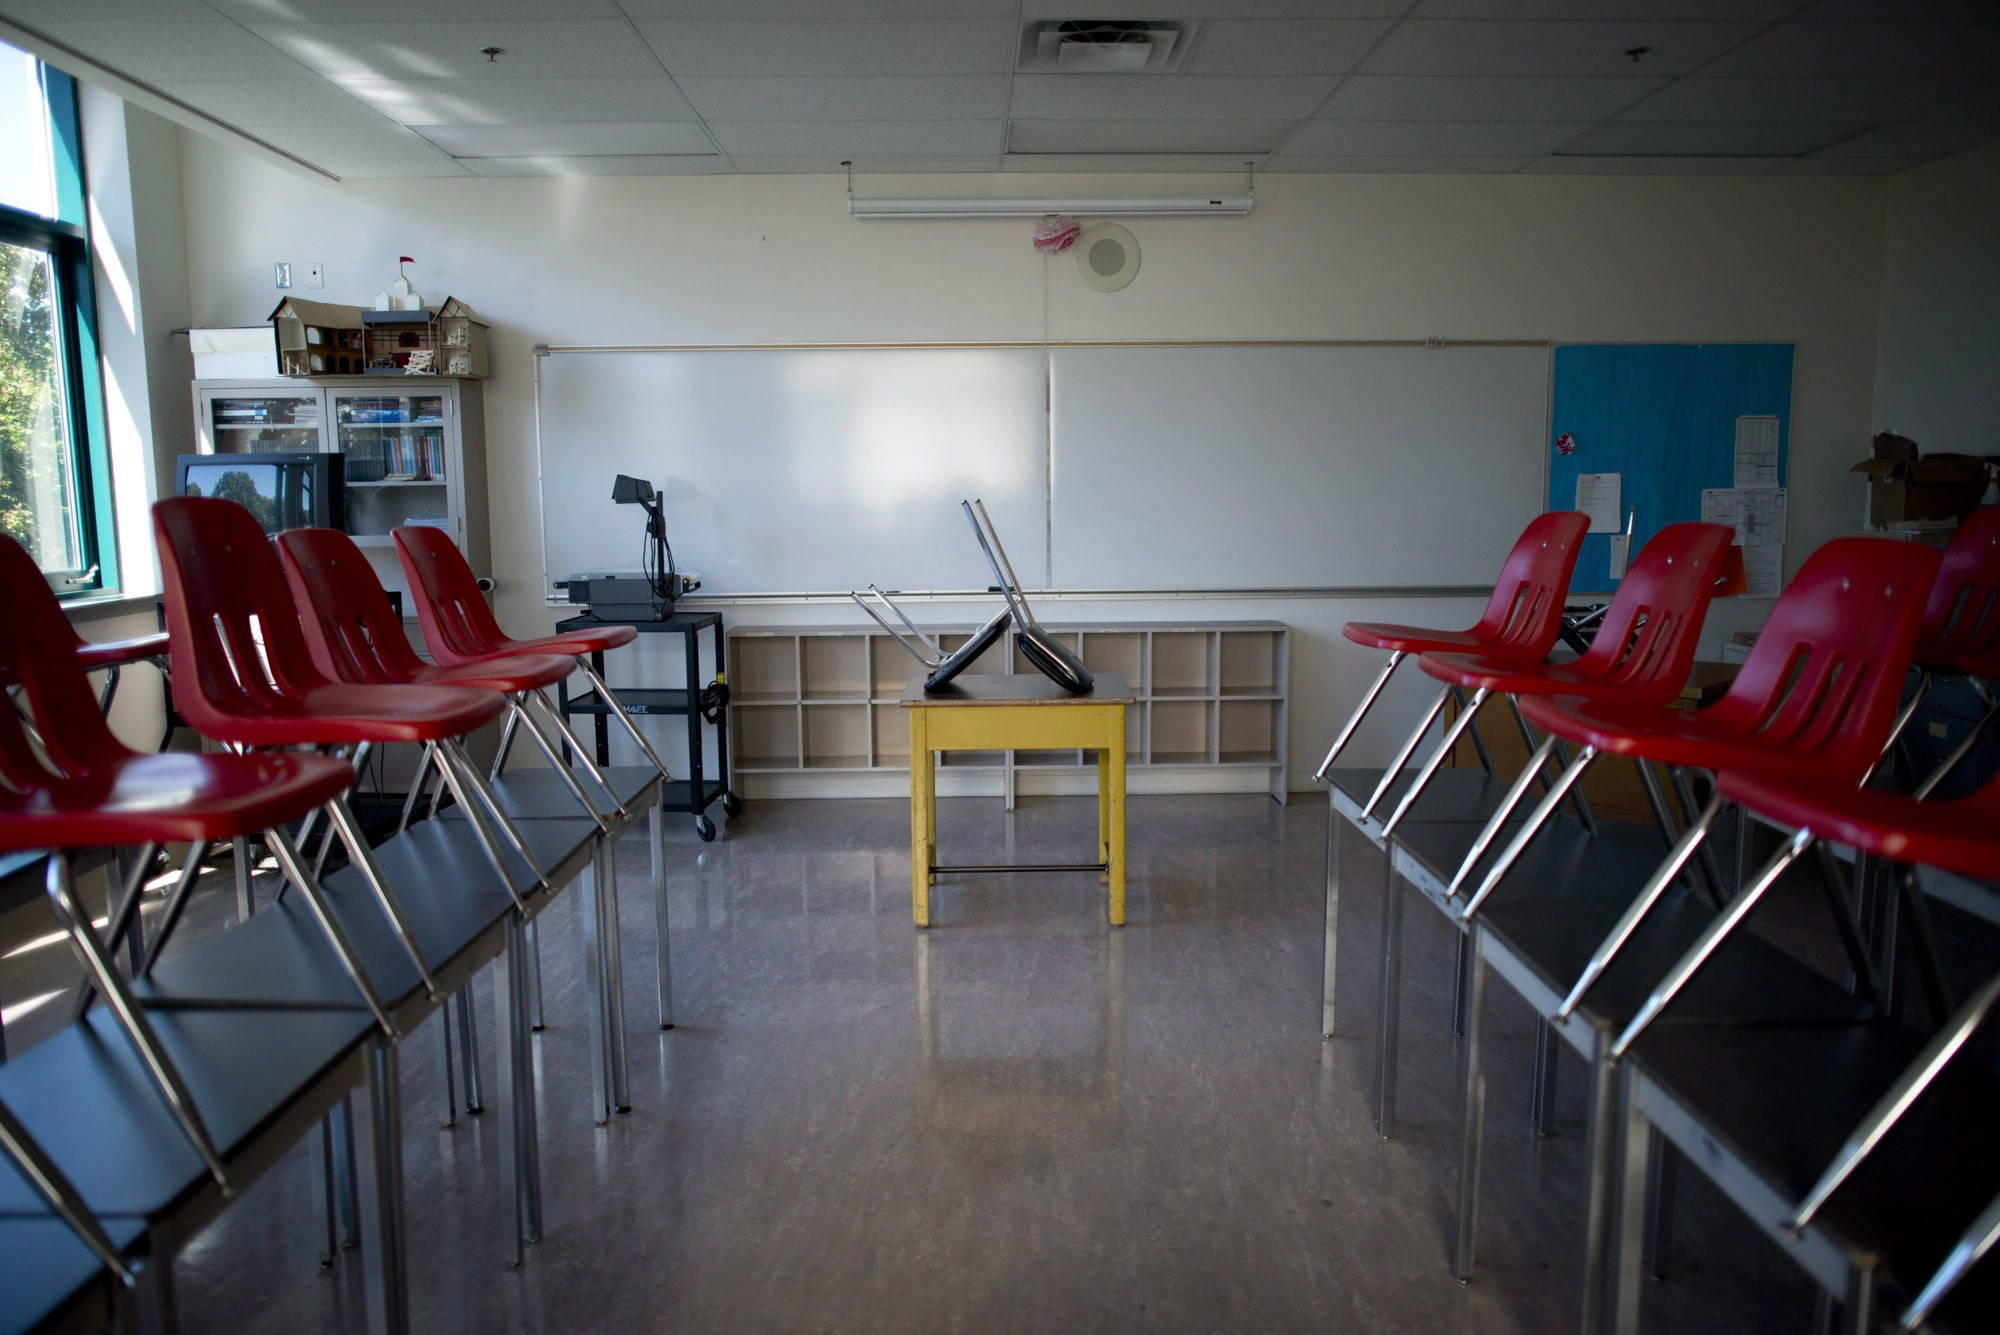 Premier wants parents to have Plan B if COVID-19 disrupts September school plans